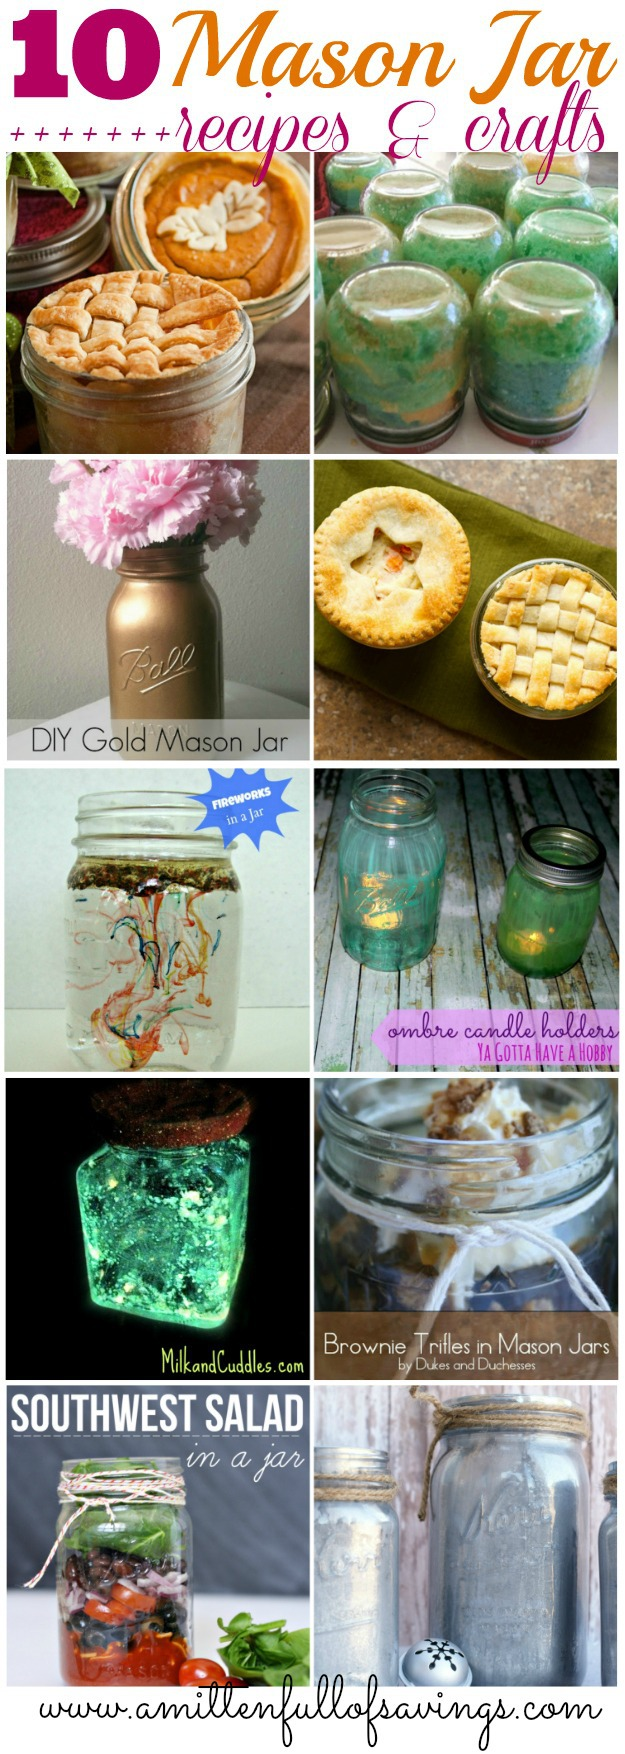 Get creative with your old Mason jars with these ideas- 10 Mason Jar Recipes & Crafts